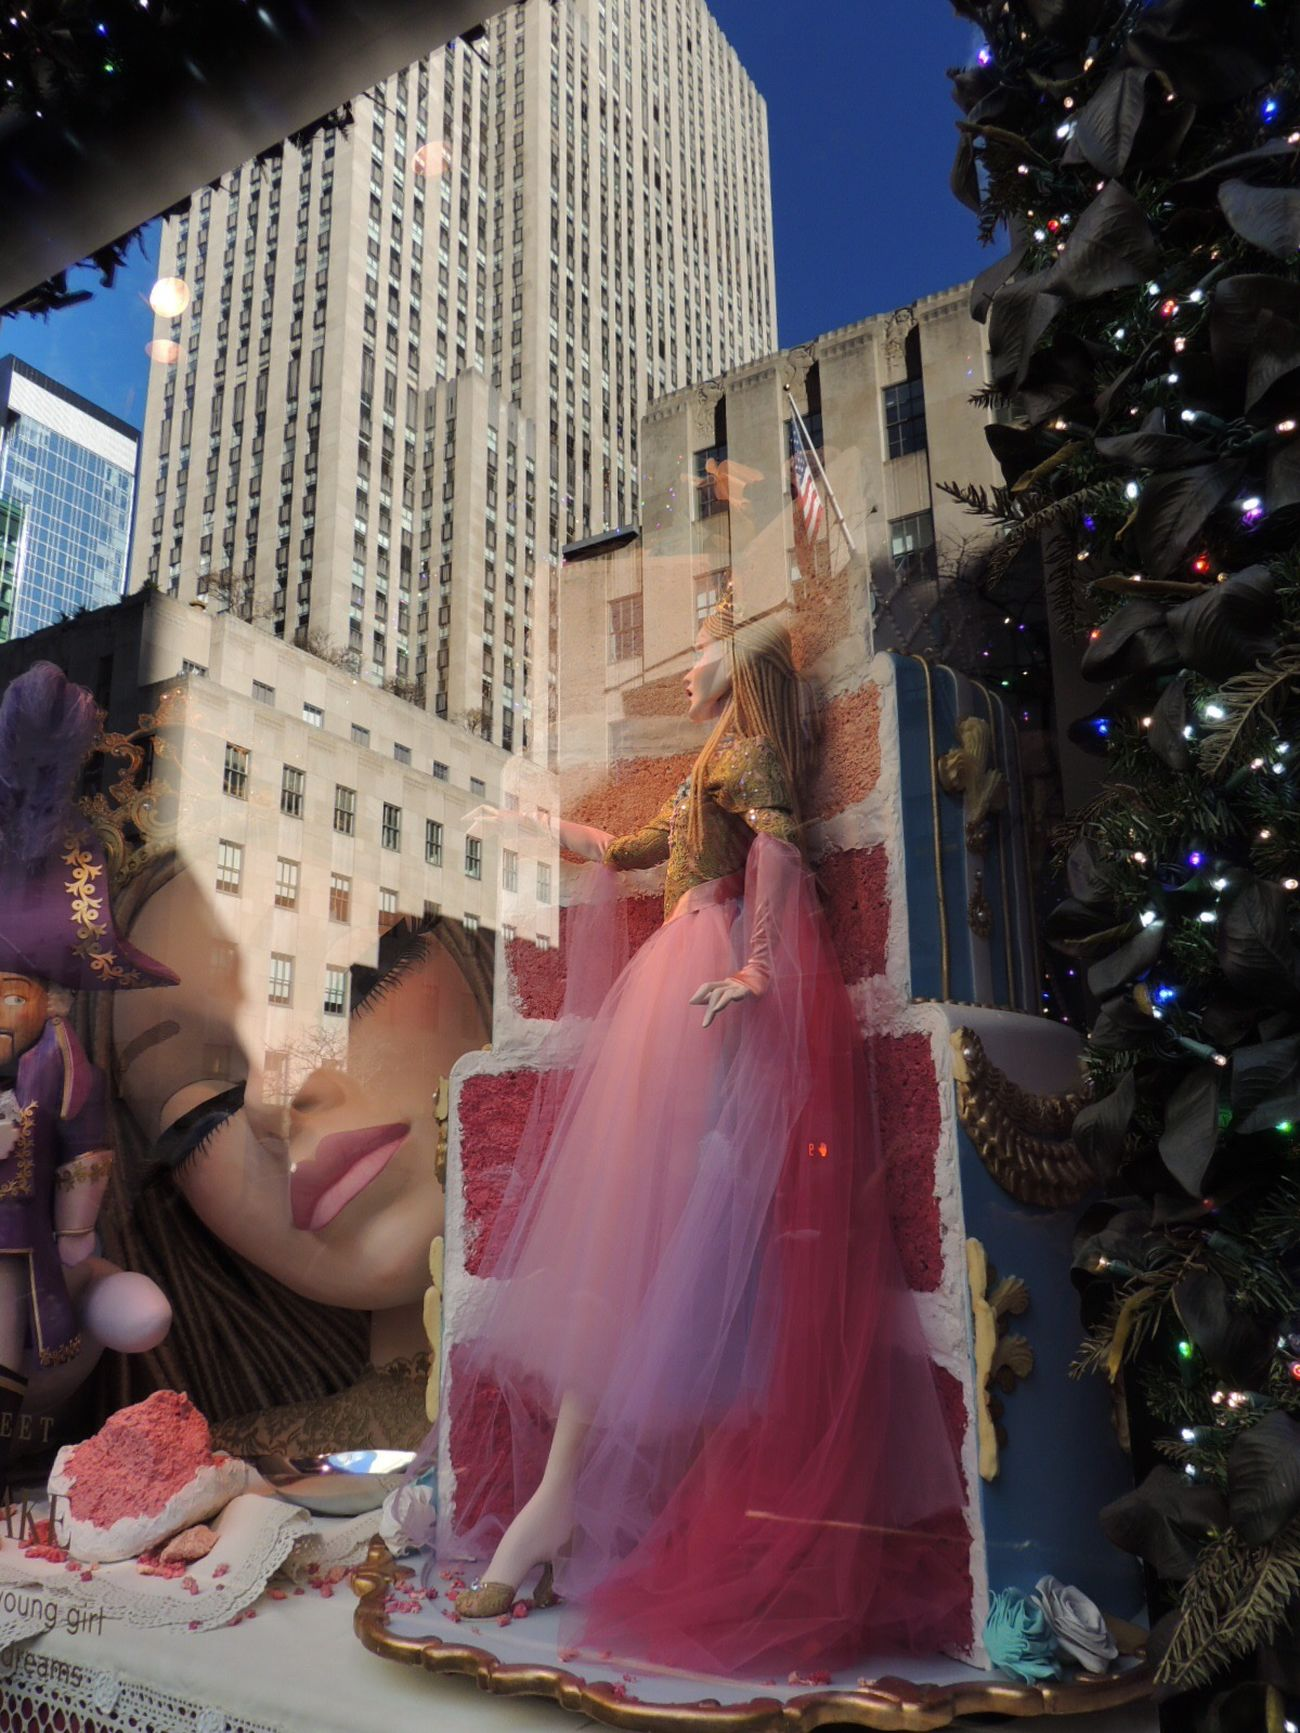 Serie :enchanting landscape of colorful candy 🍭🍭🍭 Holiday Window Creations  Multicolors  Decoration Magic Reflection_collection Building Reflections Christmastime Christmas Around The World Streetphoto_color Showcase: December Travel Photography Saks Fifth Ave Close-up I Love New York New York City United States